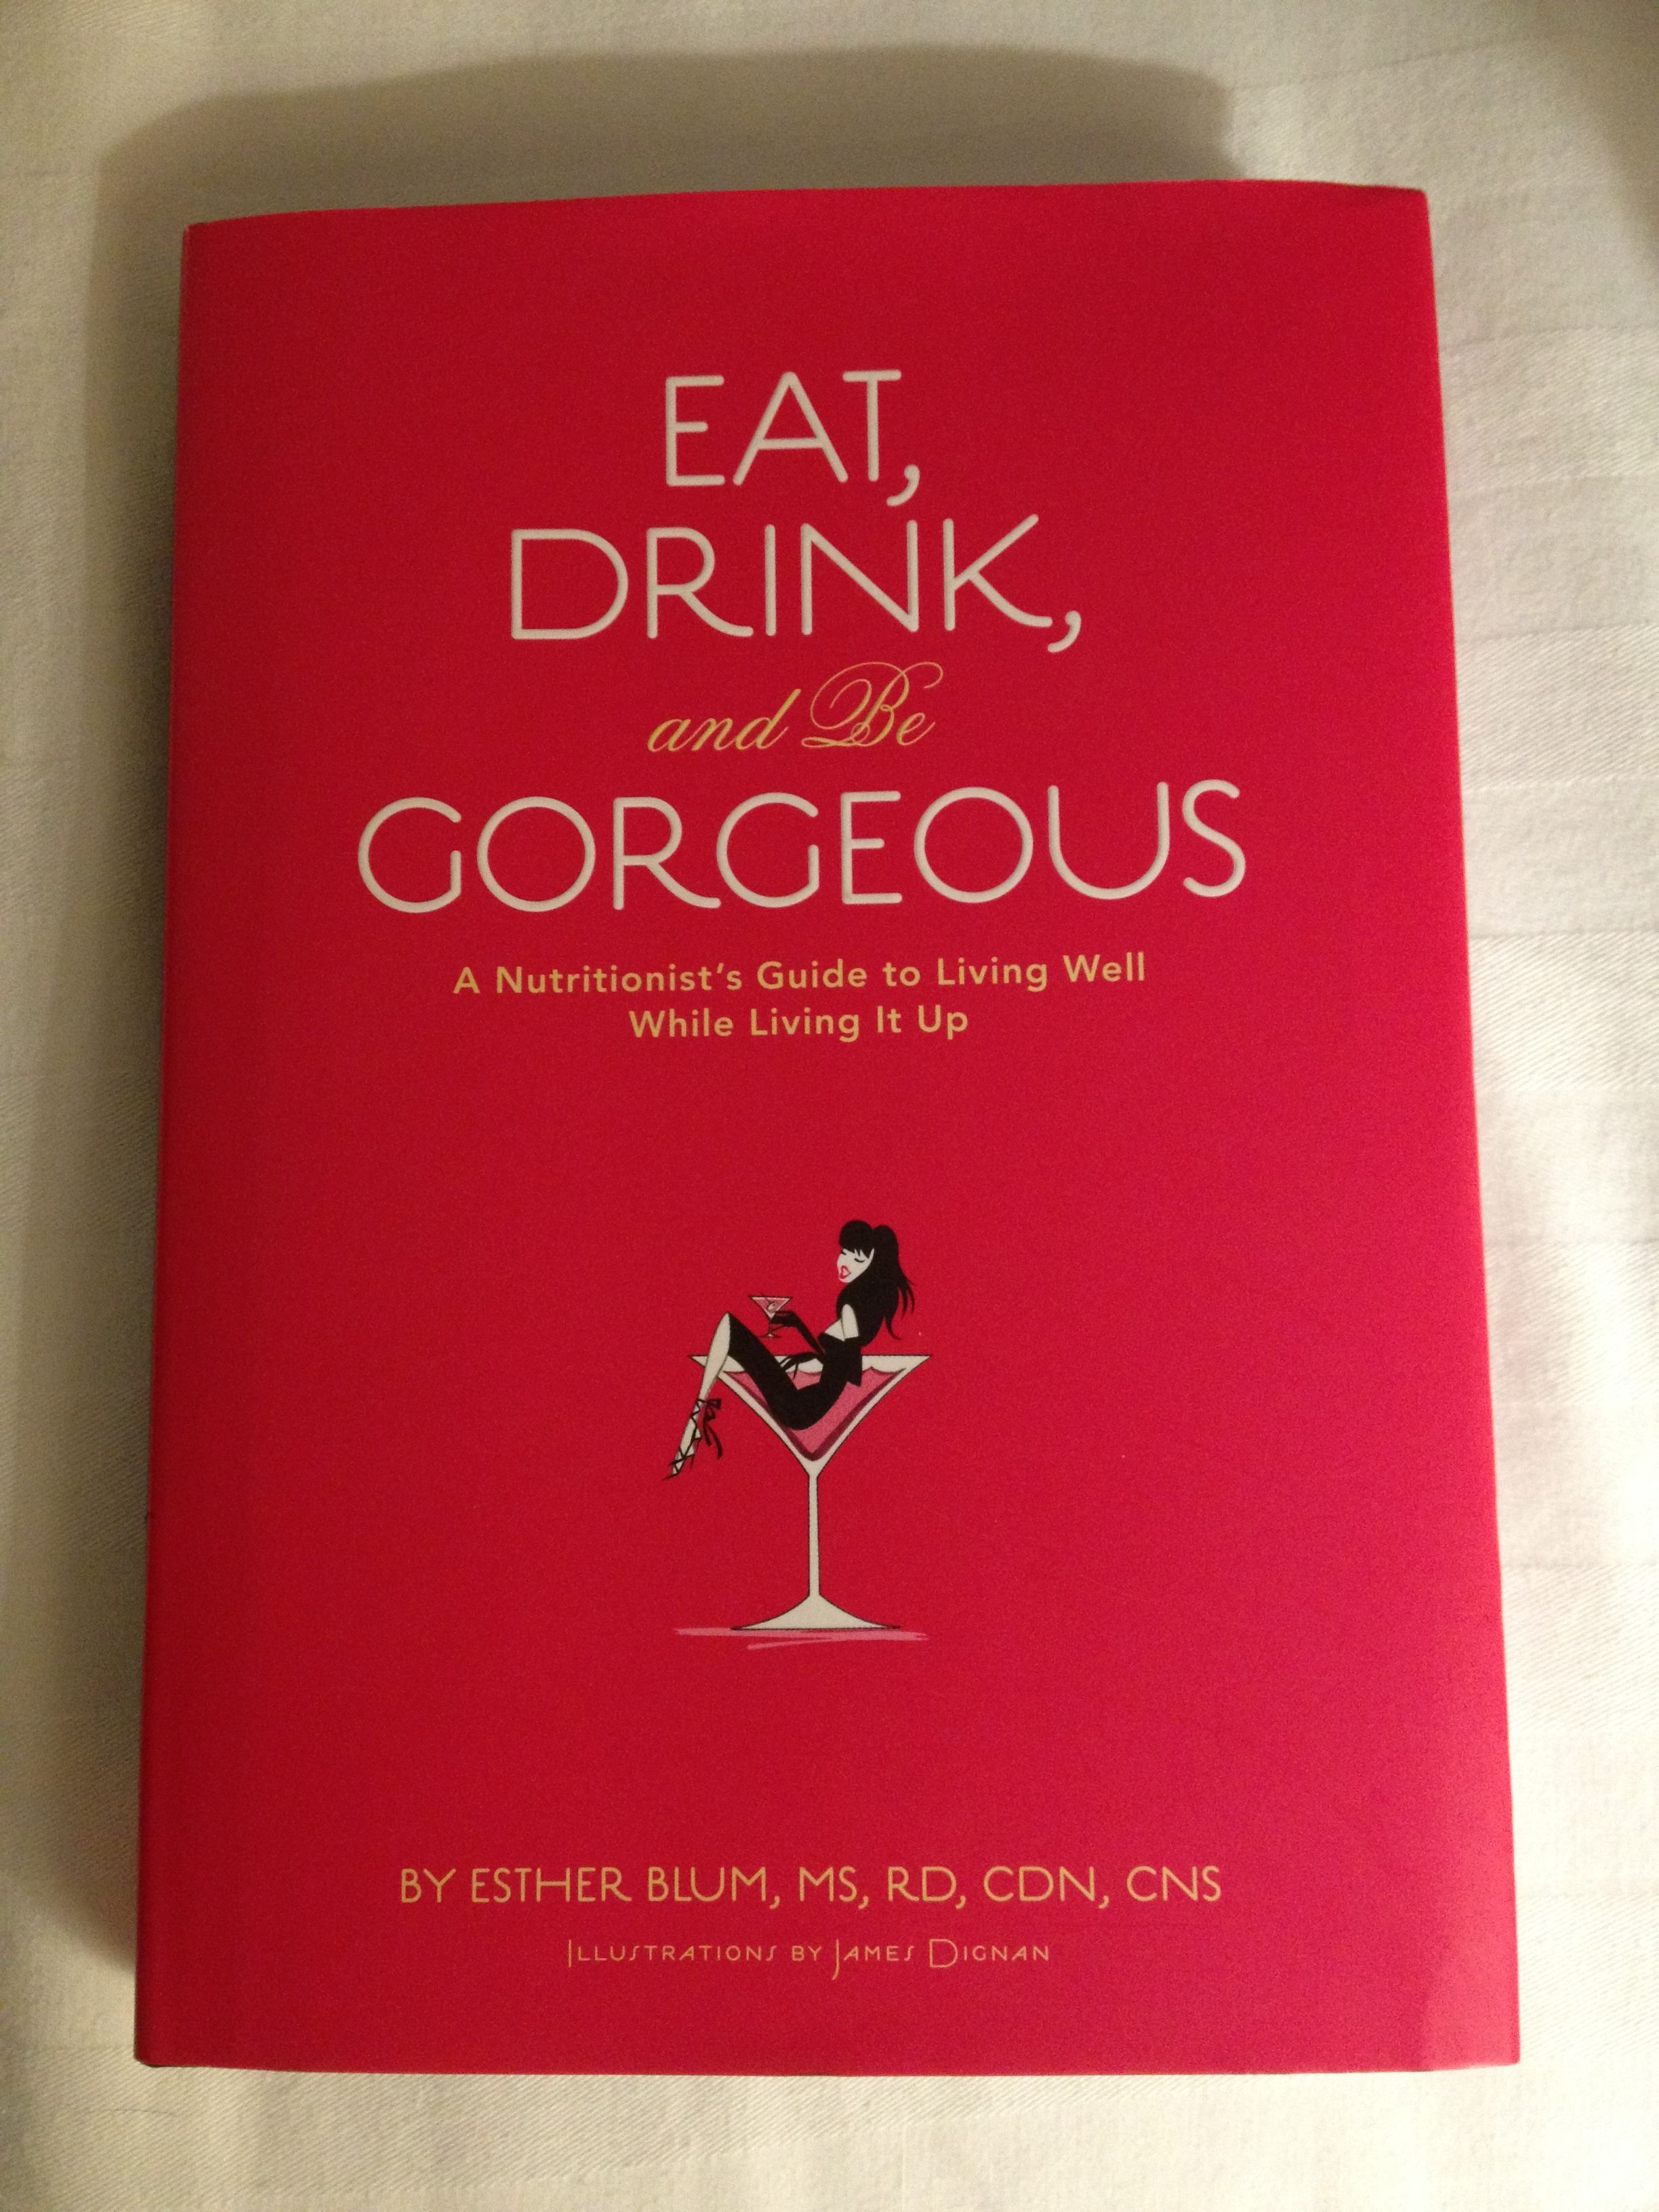 Eat drink and be by esther blum a nutritionist